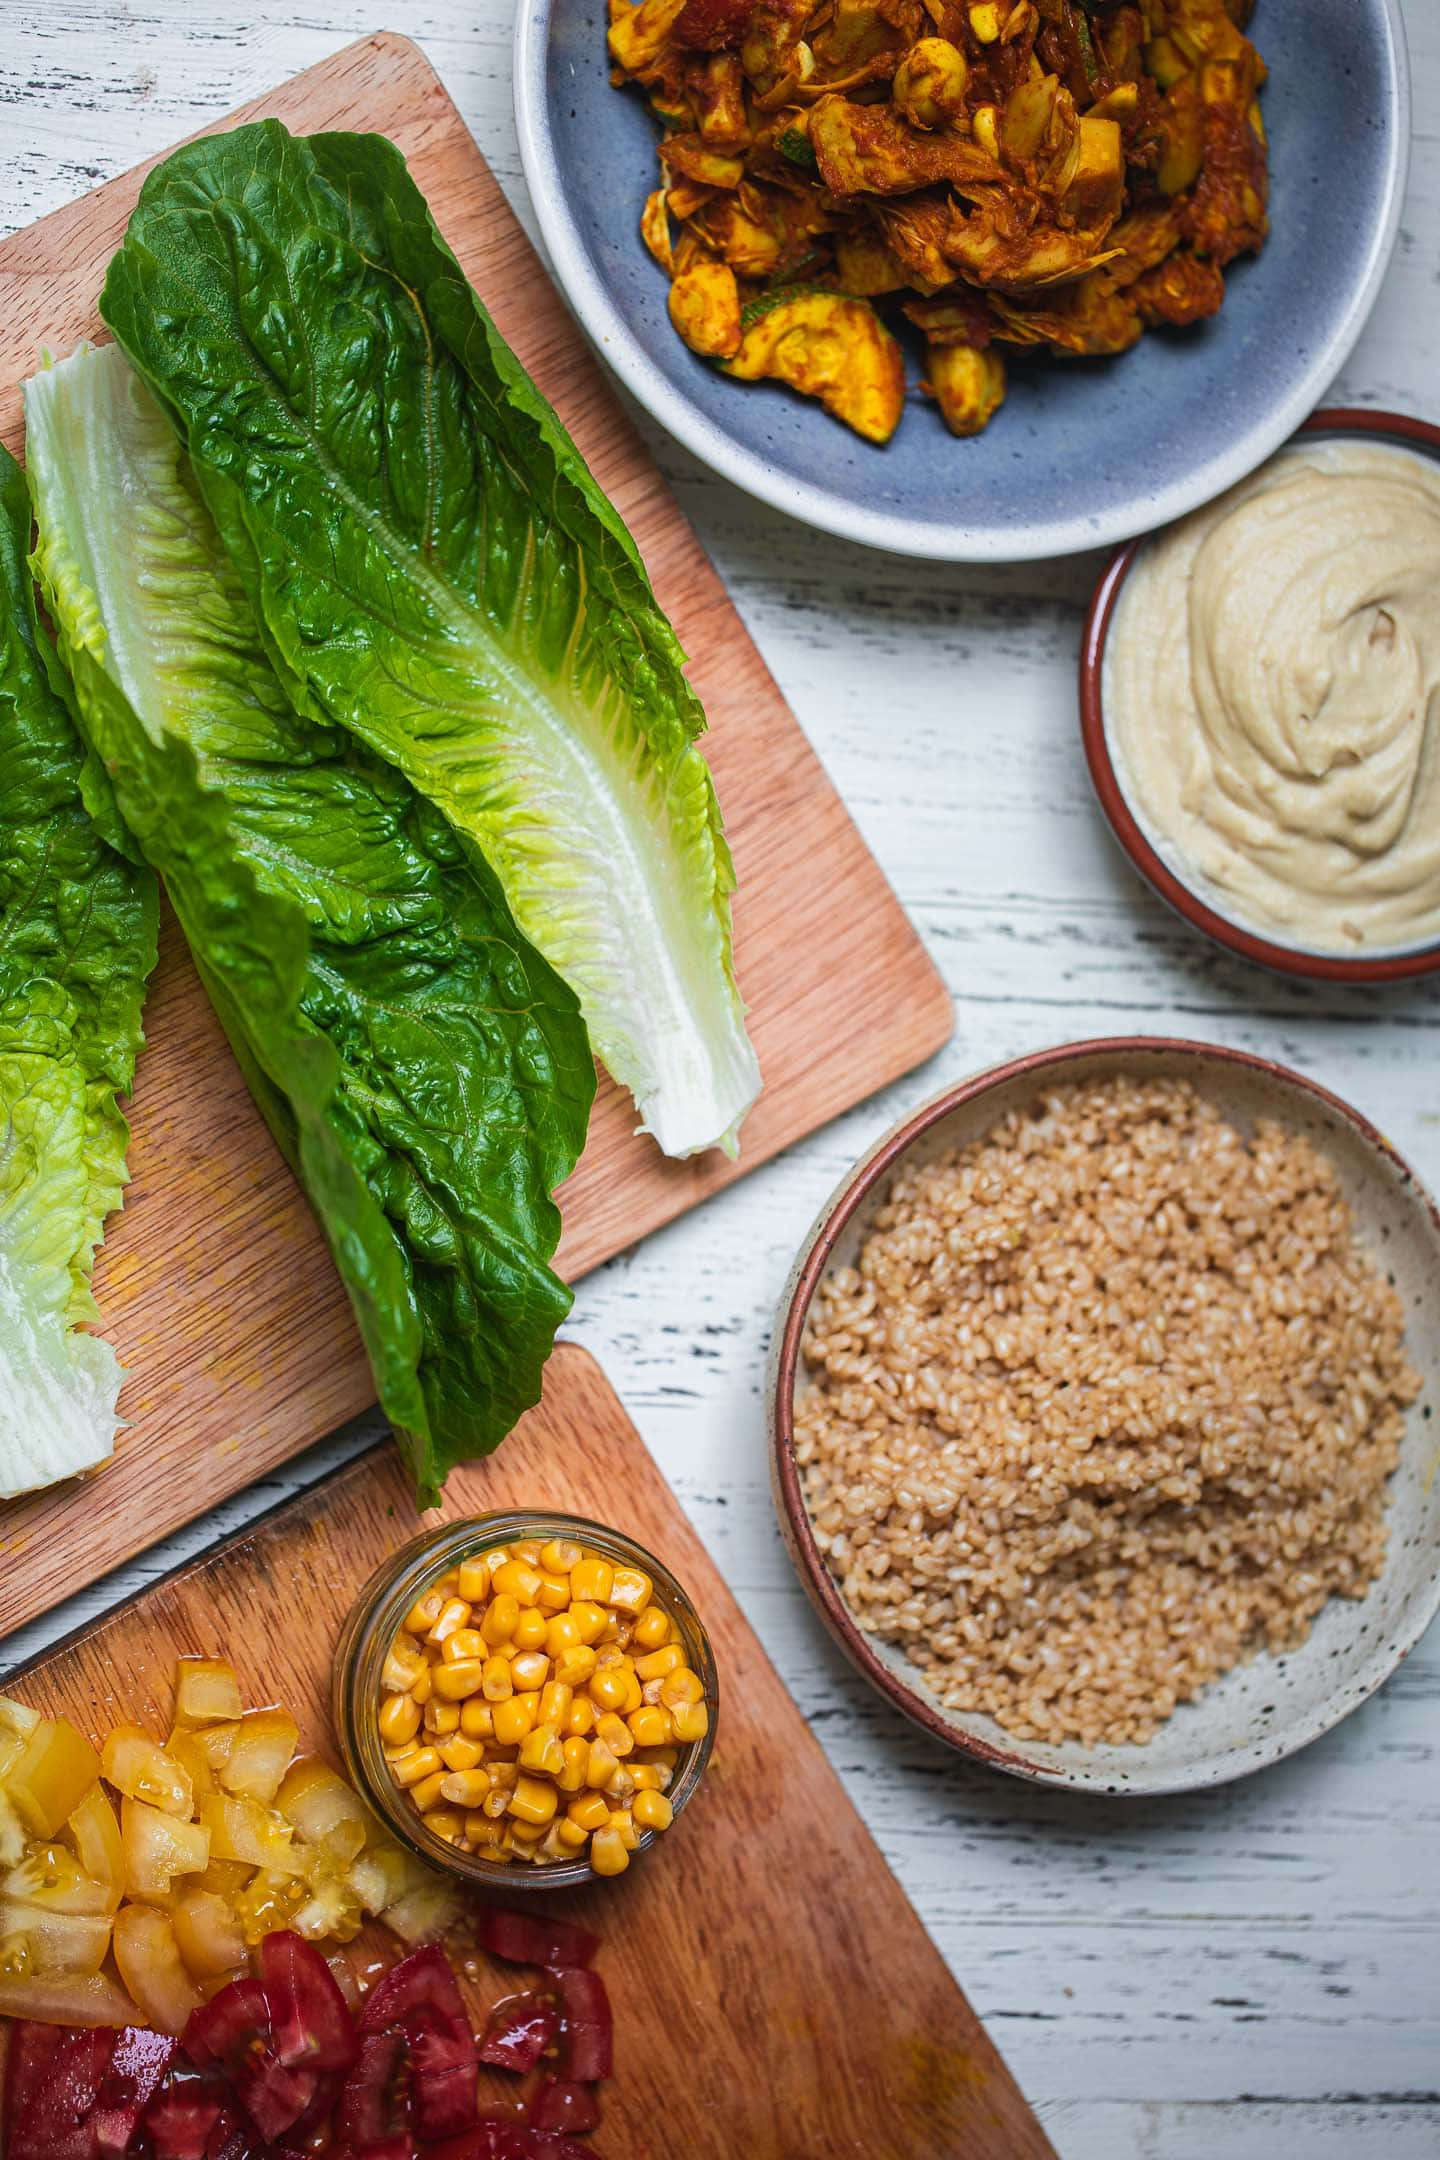 Lettuce leaves on a chopping board with brown rice and jackfruit next to them